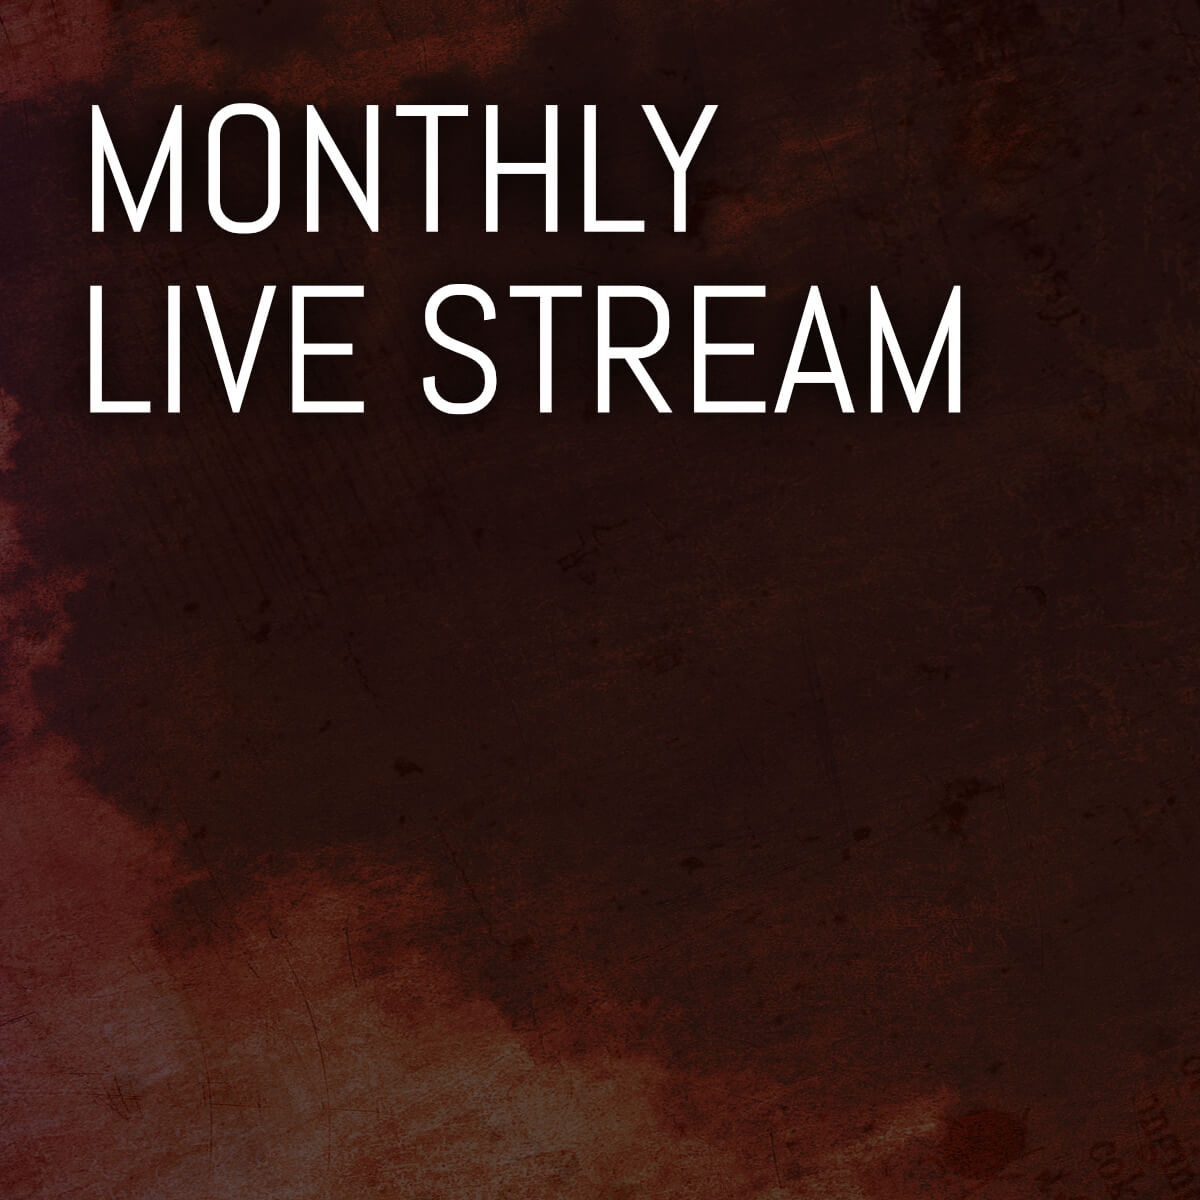 Once per month, interact with us live as we discuss what's new with the band and give insight into our music.